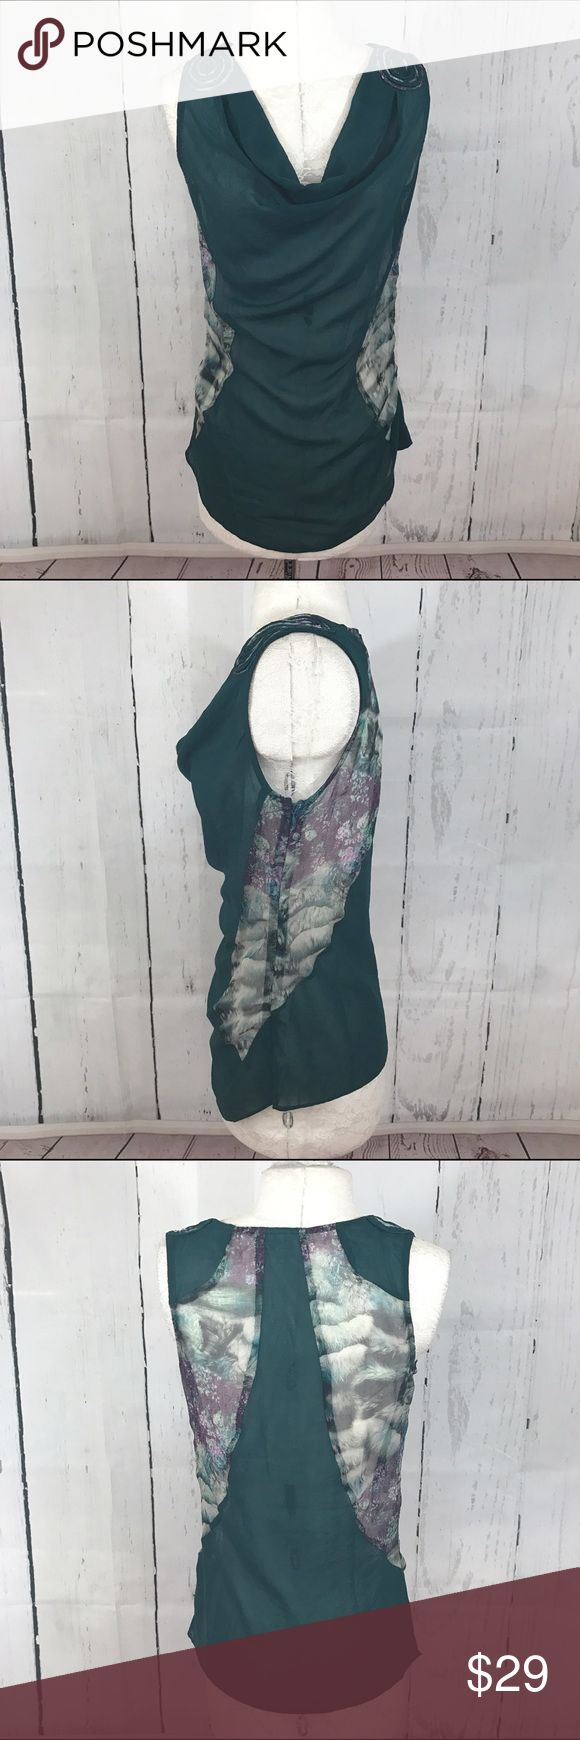 """💛💛 LULUMARI TEAL PRINTED BLOUSE B10 Condition: EUC Approximate measurements (laying flat): 15"""" bust 23"""" length  Item location: bin 10   **bundles save 10%** no trades/no modeling/no asking for lowest Anthropologie Tops Blouses"""